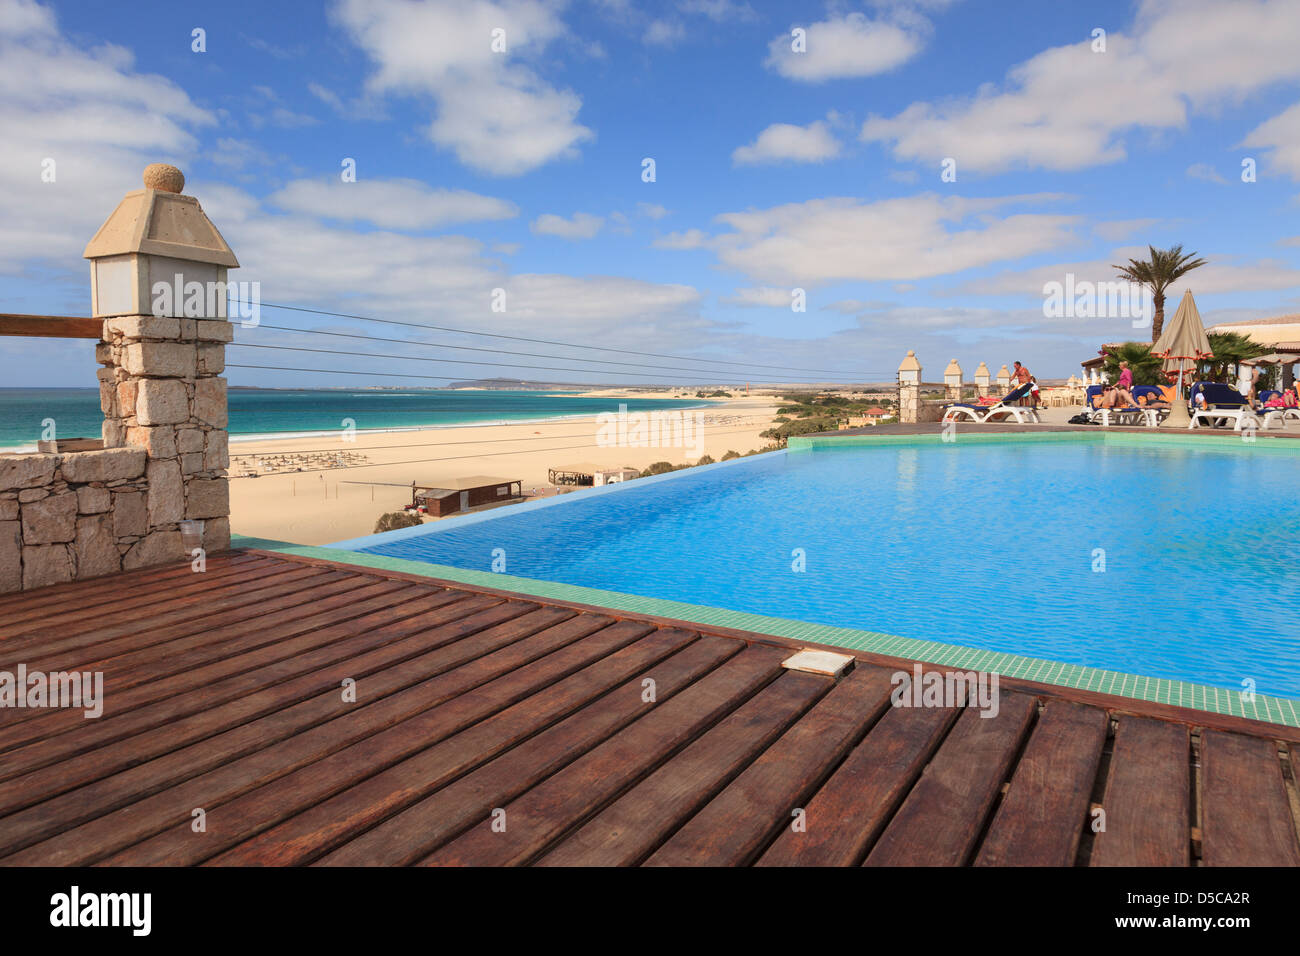 Wooden sun decking by infinity pool in Iberostar resort